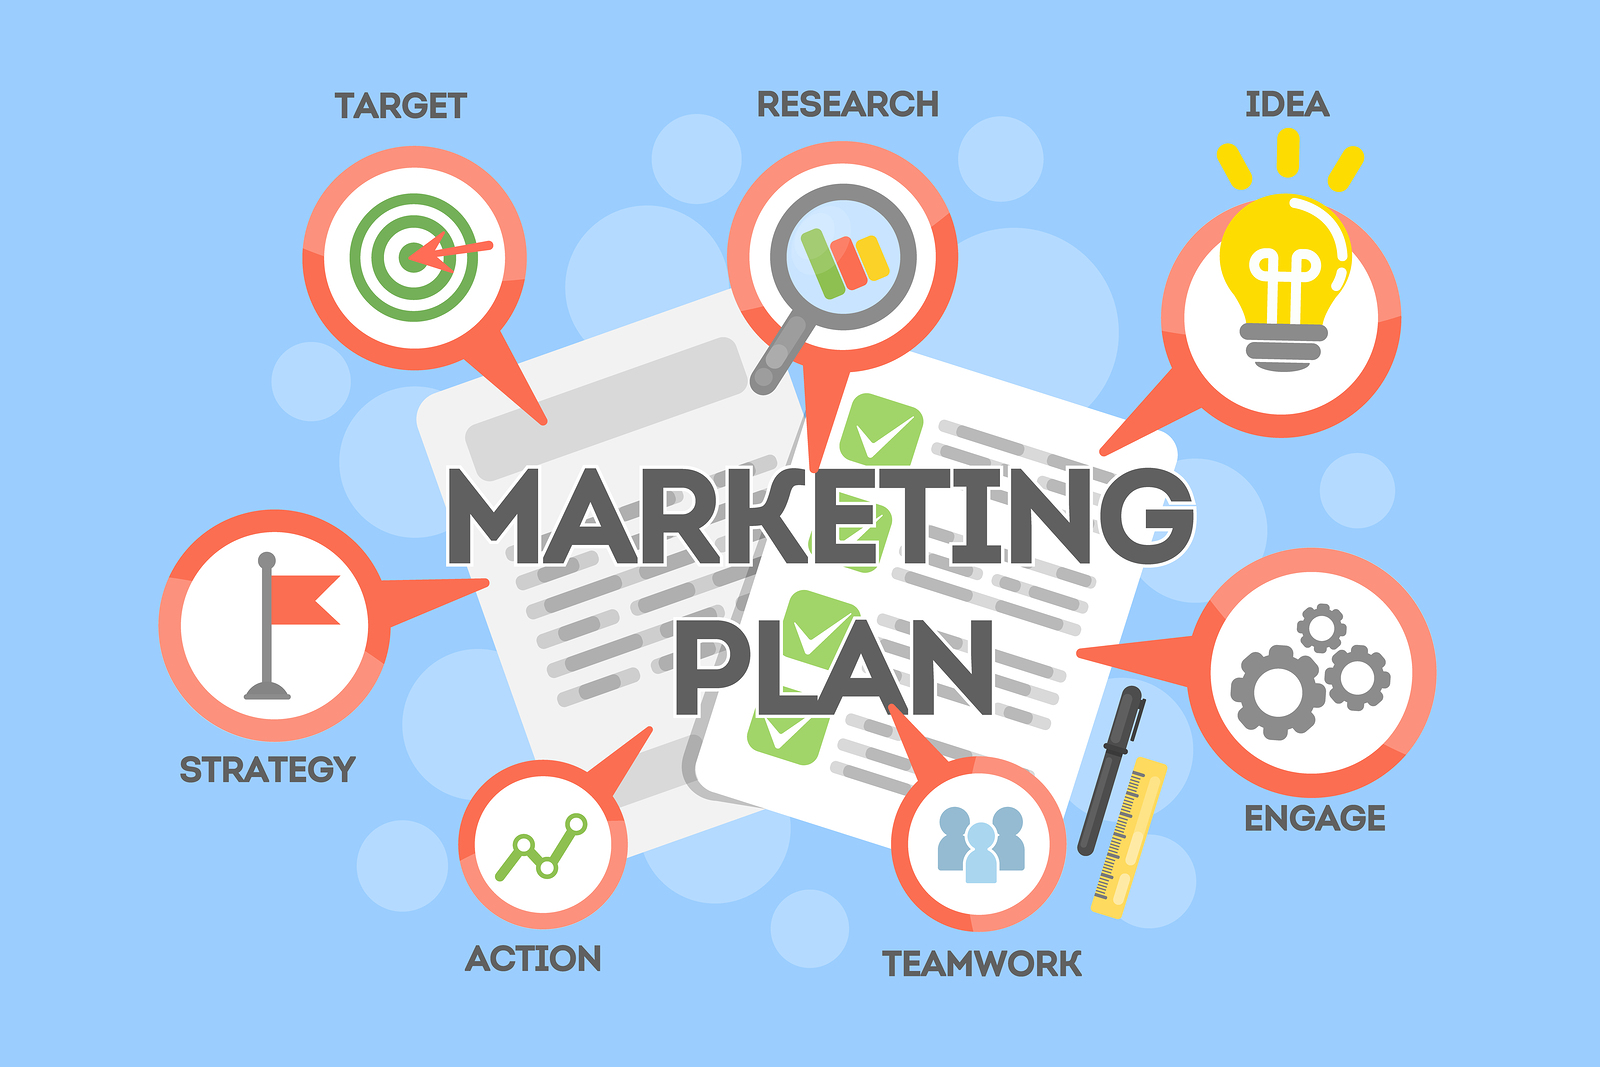 how to build a strategic marketing plan for 2019 part 3 of 4Marketing #4